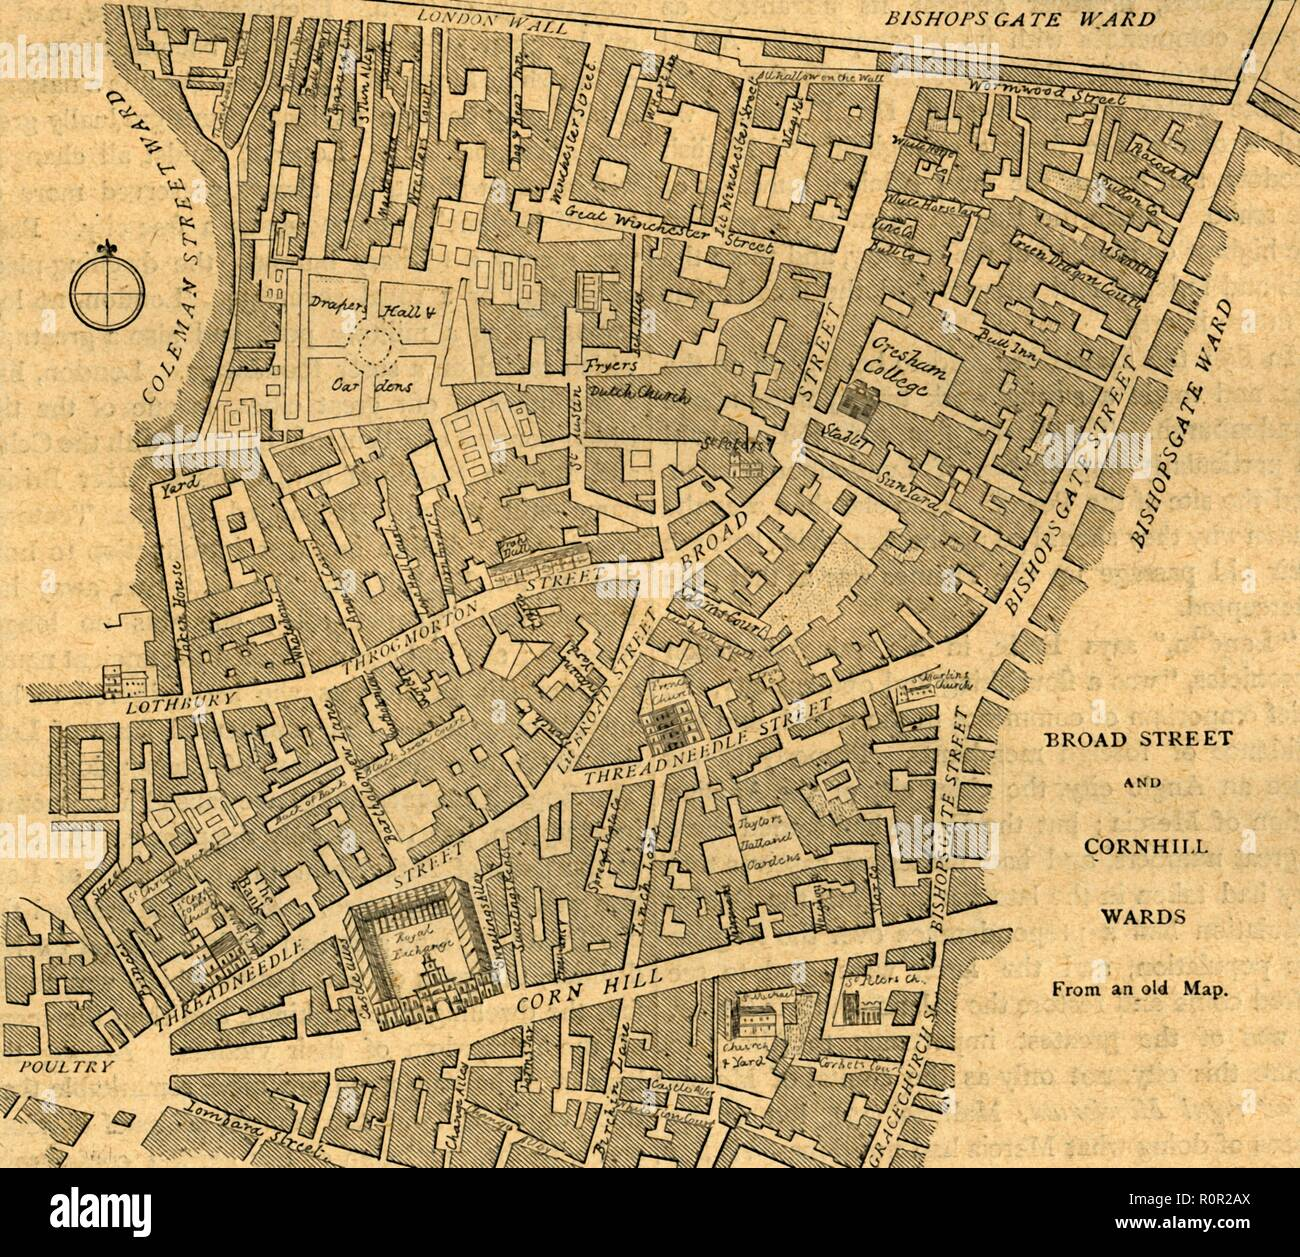 'Broad Street and Cornhill Wards', 1897. Map of part of the City of London from the mid 18th century, showing parish divisions. Places marked include the Royal Exchange and the Bank of England, and part of the old city walls. From Old and New London, Volume I, by Walter Thornbury. [Cassell and Company, Limited, London, Paris & Melbourne, 1897] - Stock Image